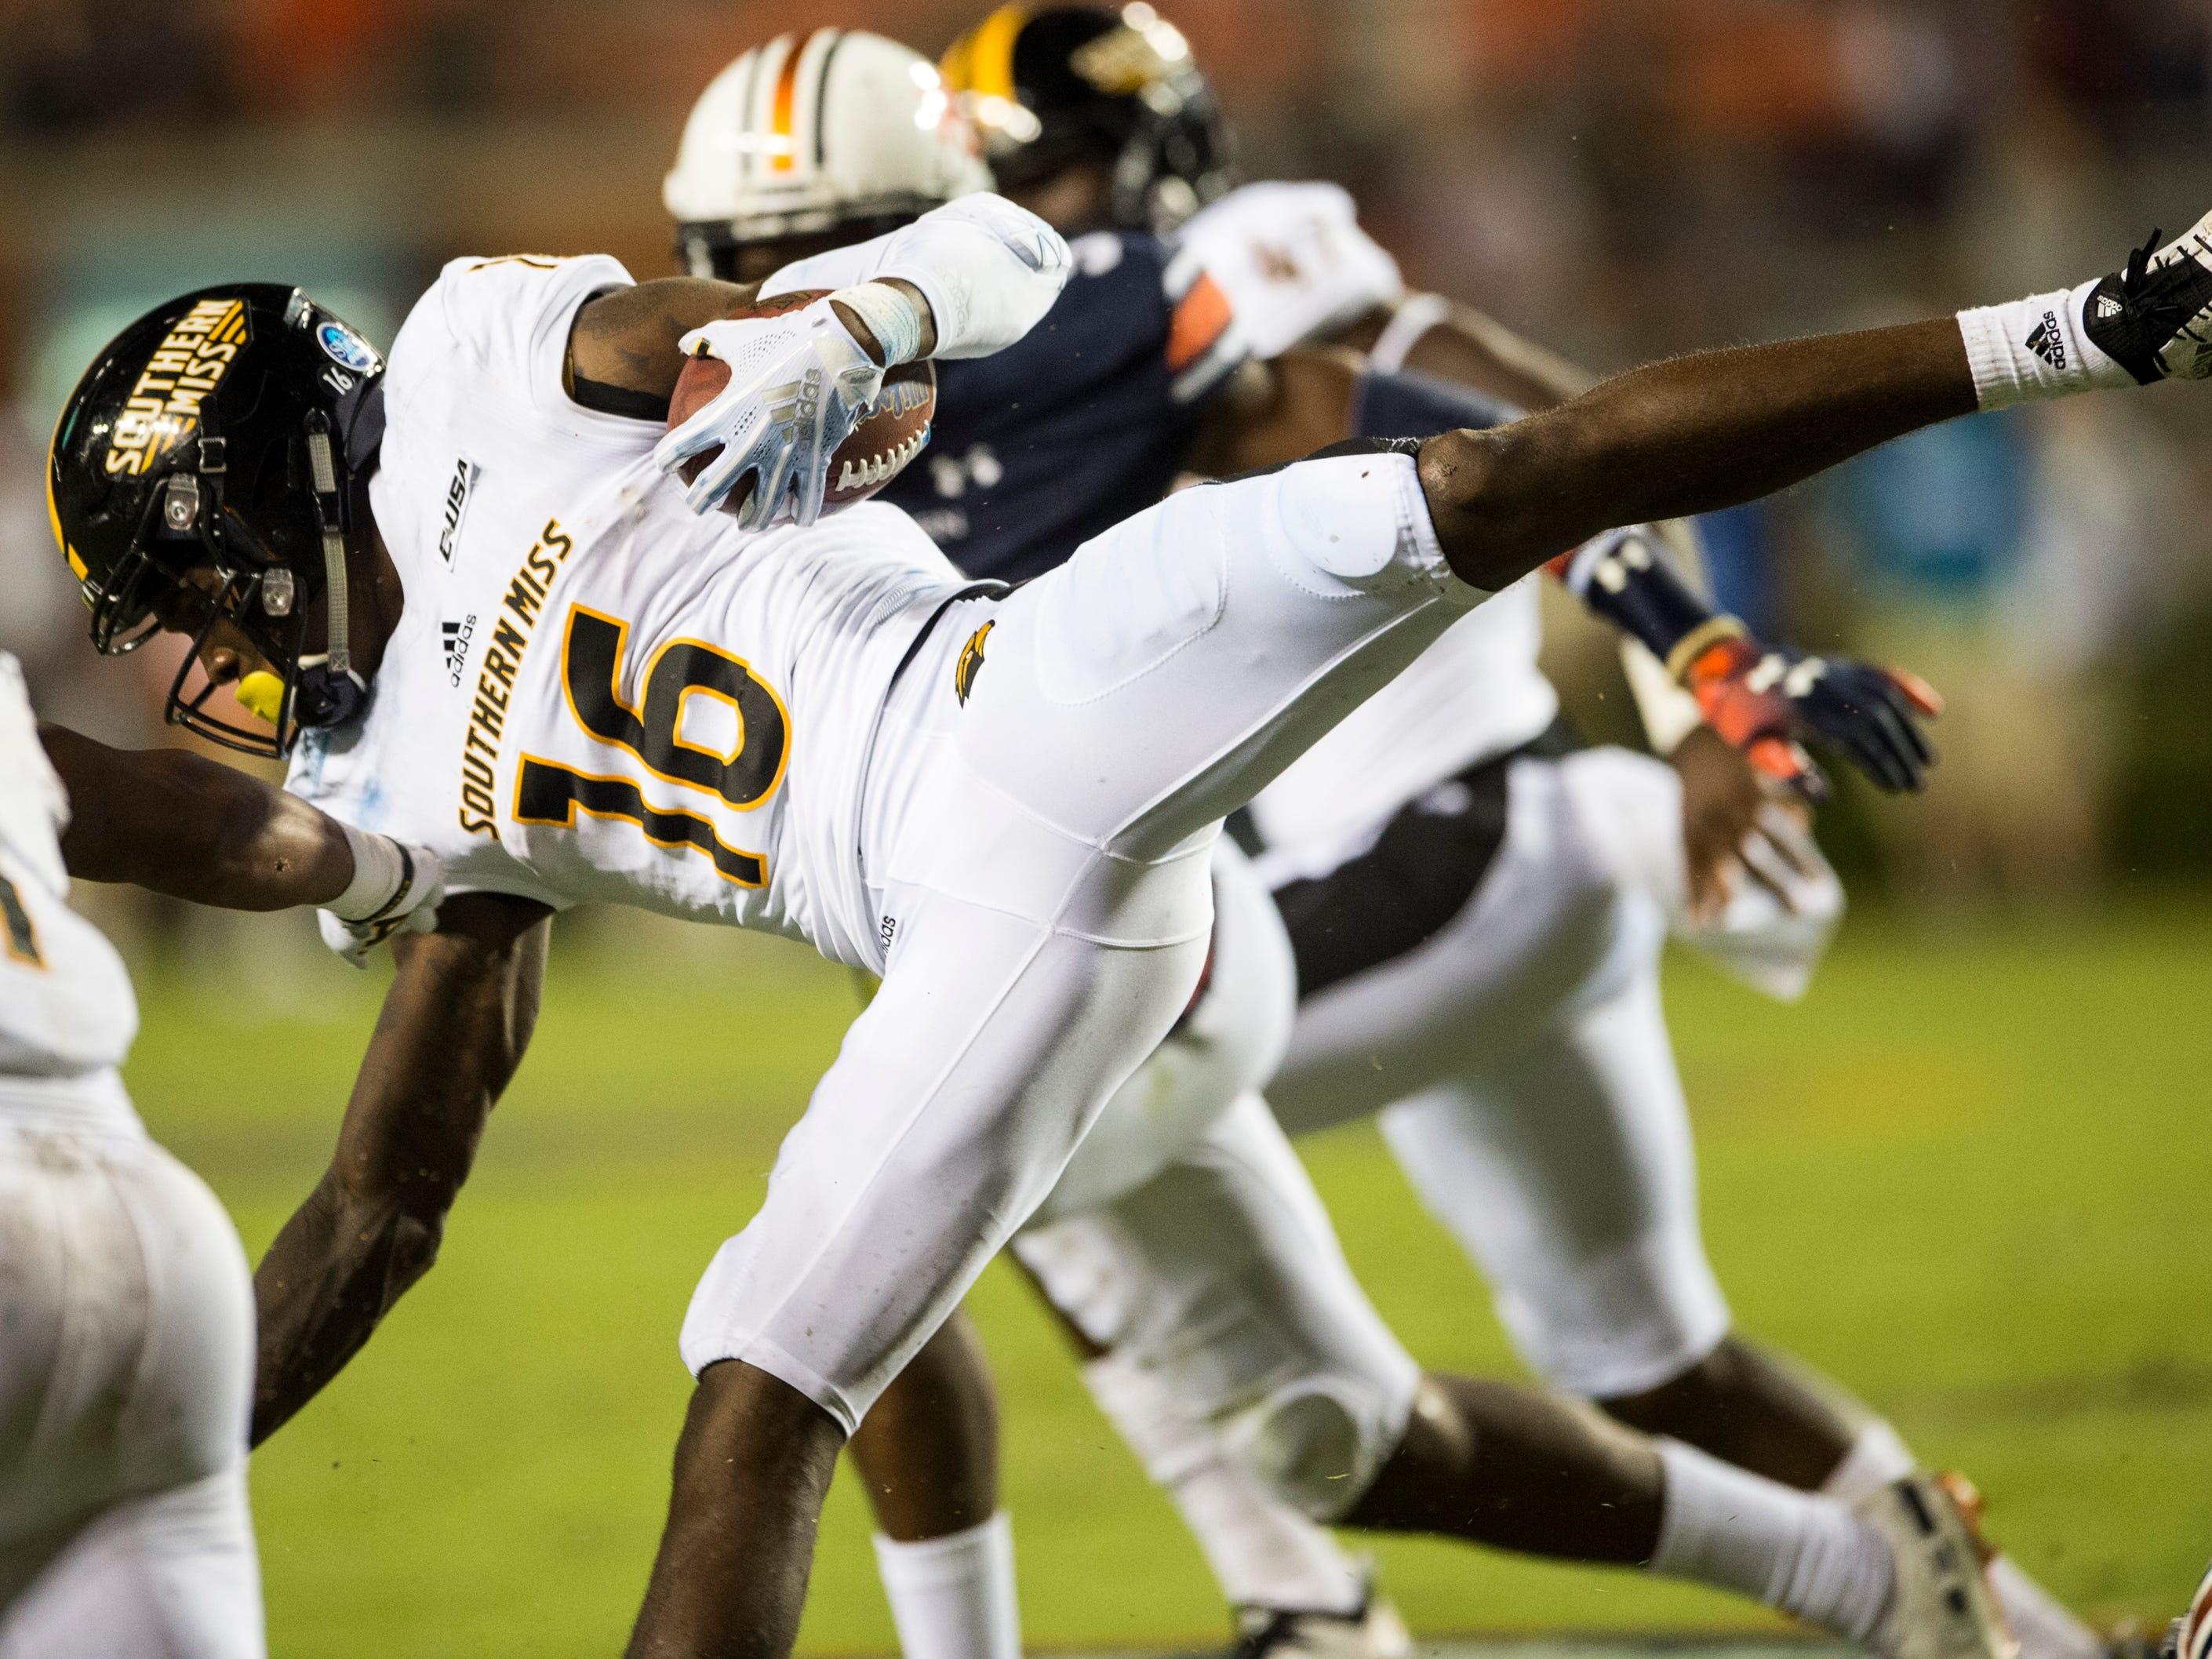 Southern Miss' Quez Watkins (16) trips over an Auburn defender as he runs the ball at Jordan-Hare Stadium in Auburn, Ala., on Saturday, Sept. 29, 2018. Auburn defeated  Southern Miss 24-13.